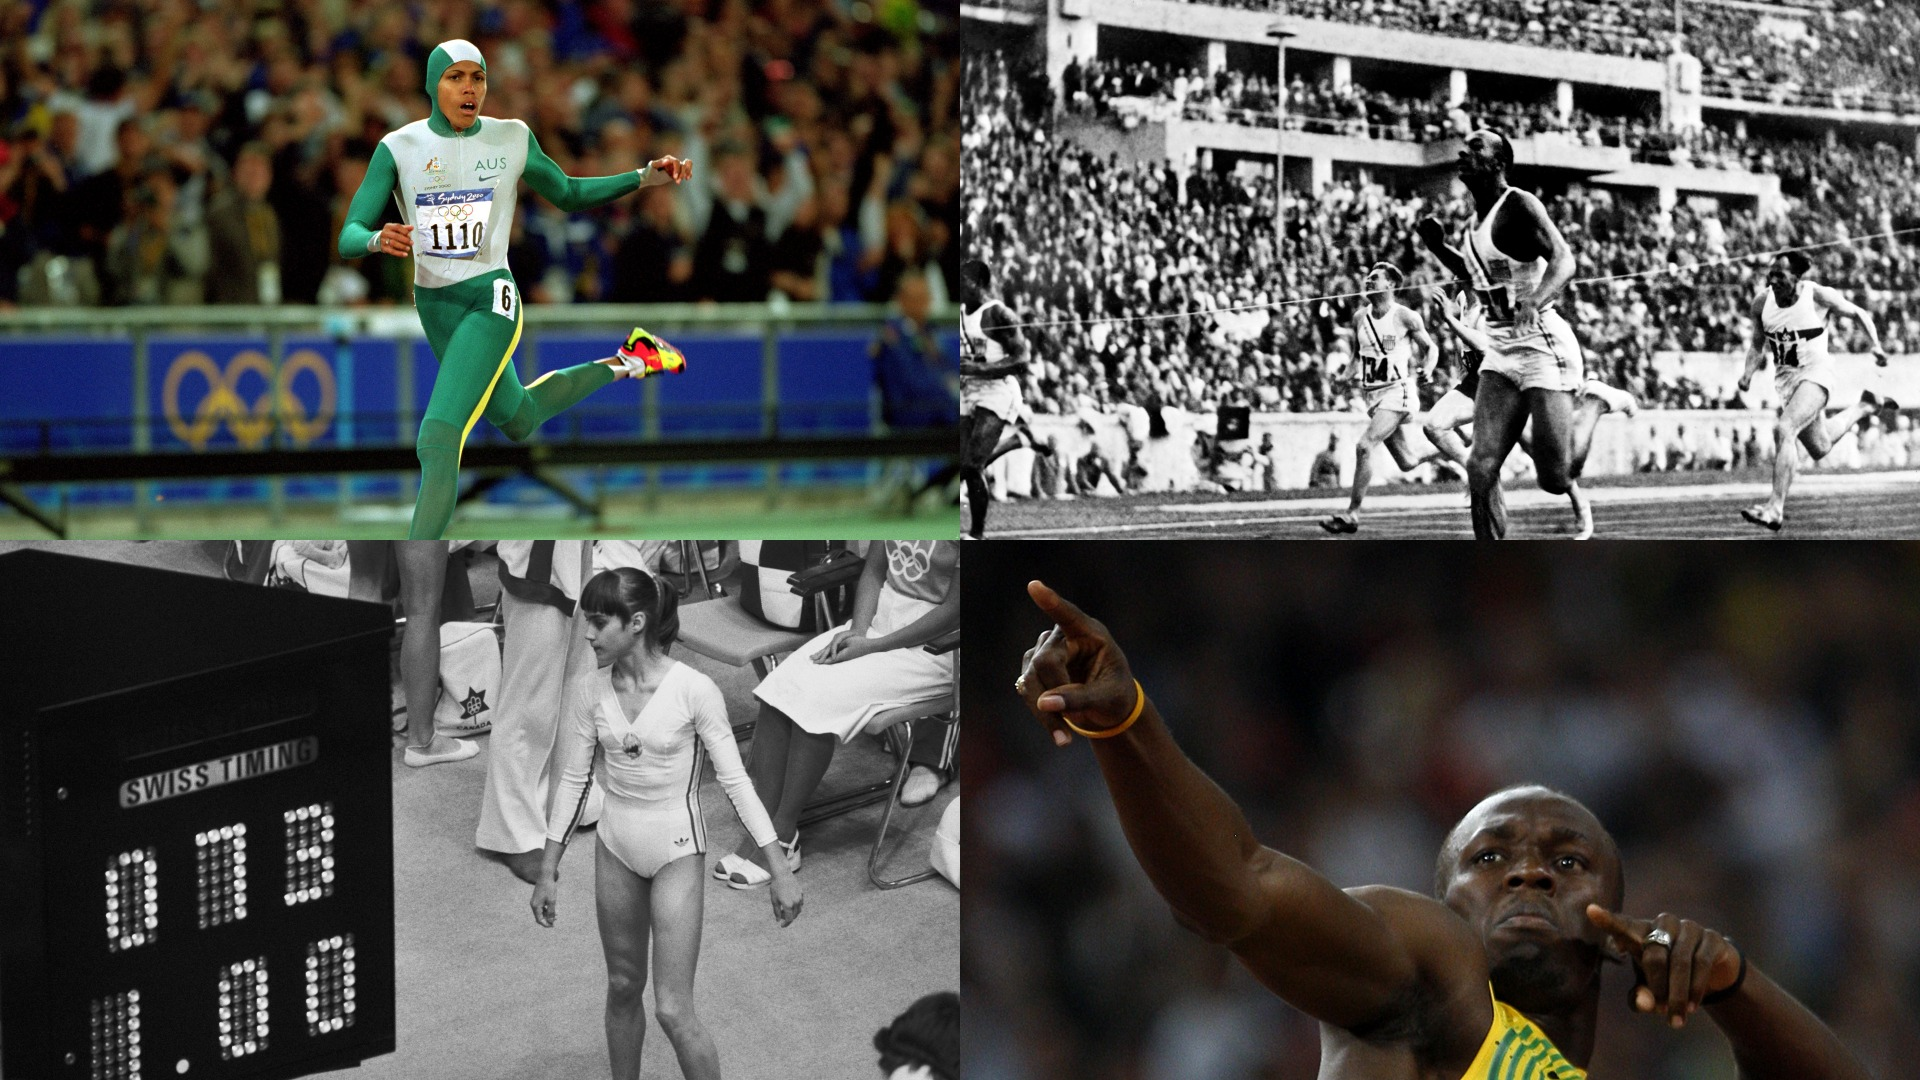 Tokyo Games 100 days to go: Lightning Bolt in Beijing and Freeman's spacesuit - 10 of the greatest moments in Olympics history